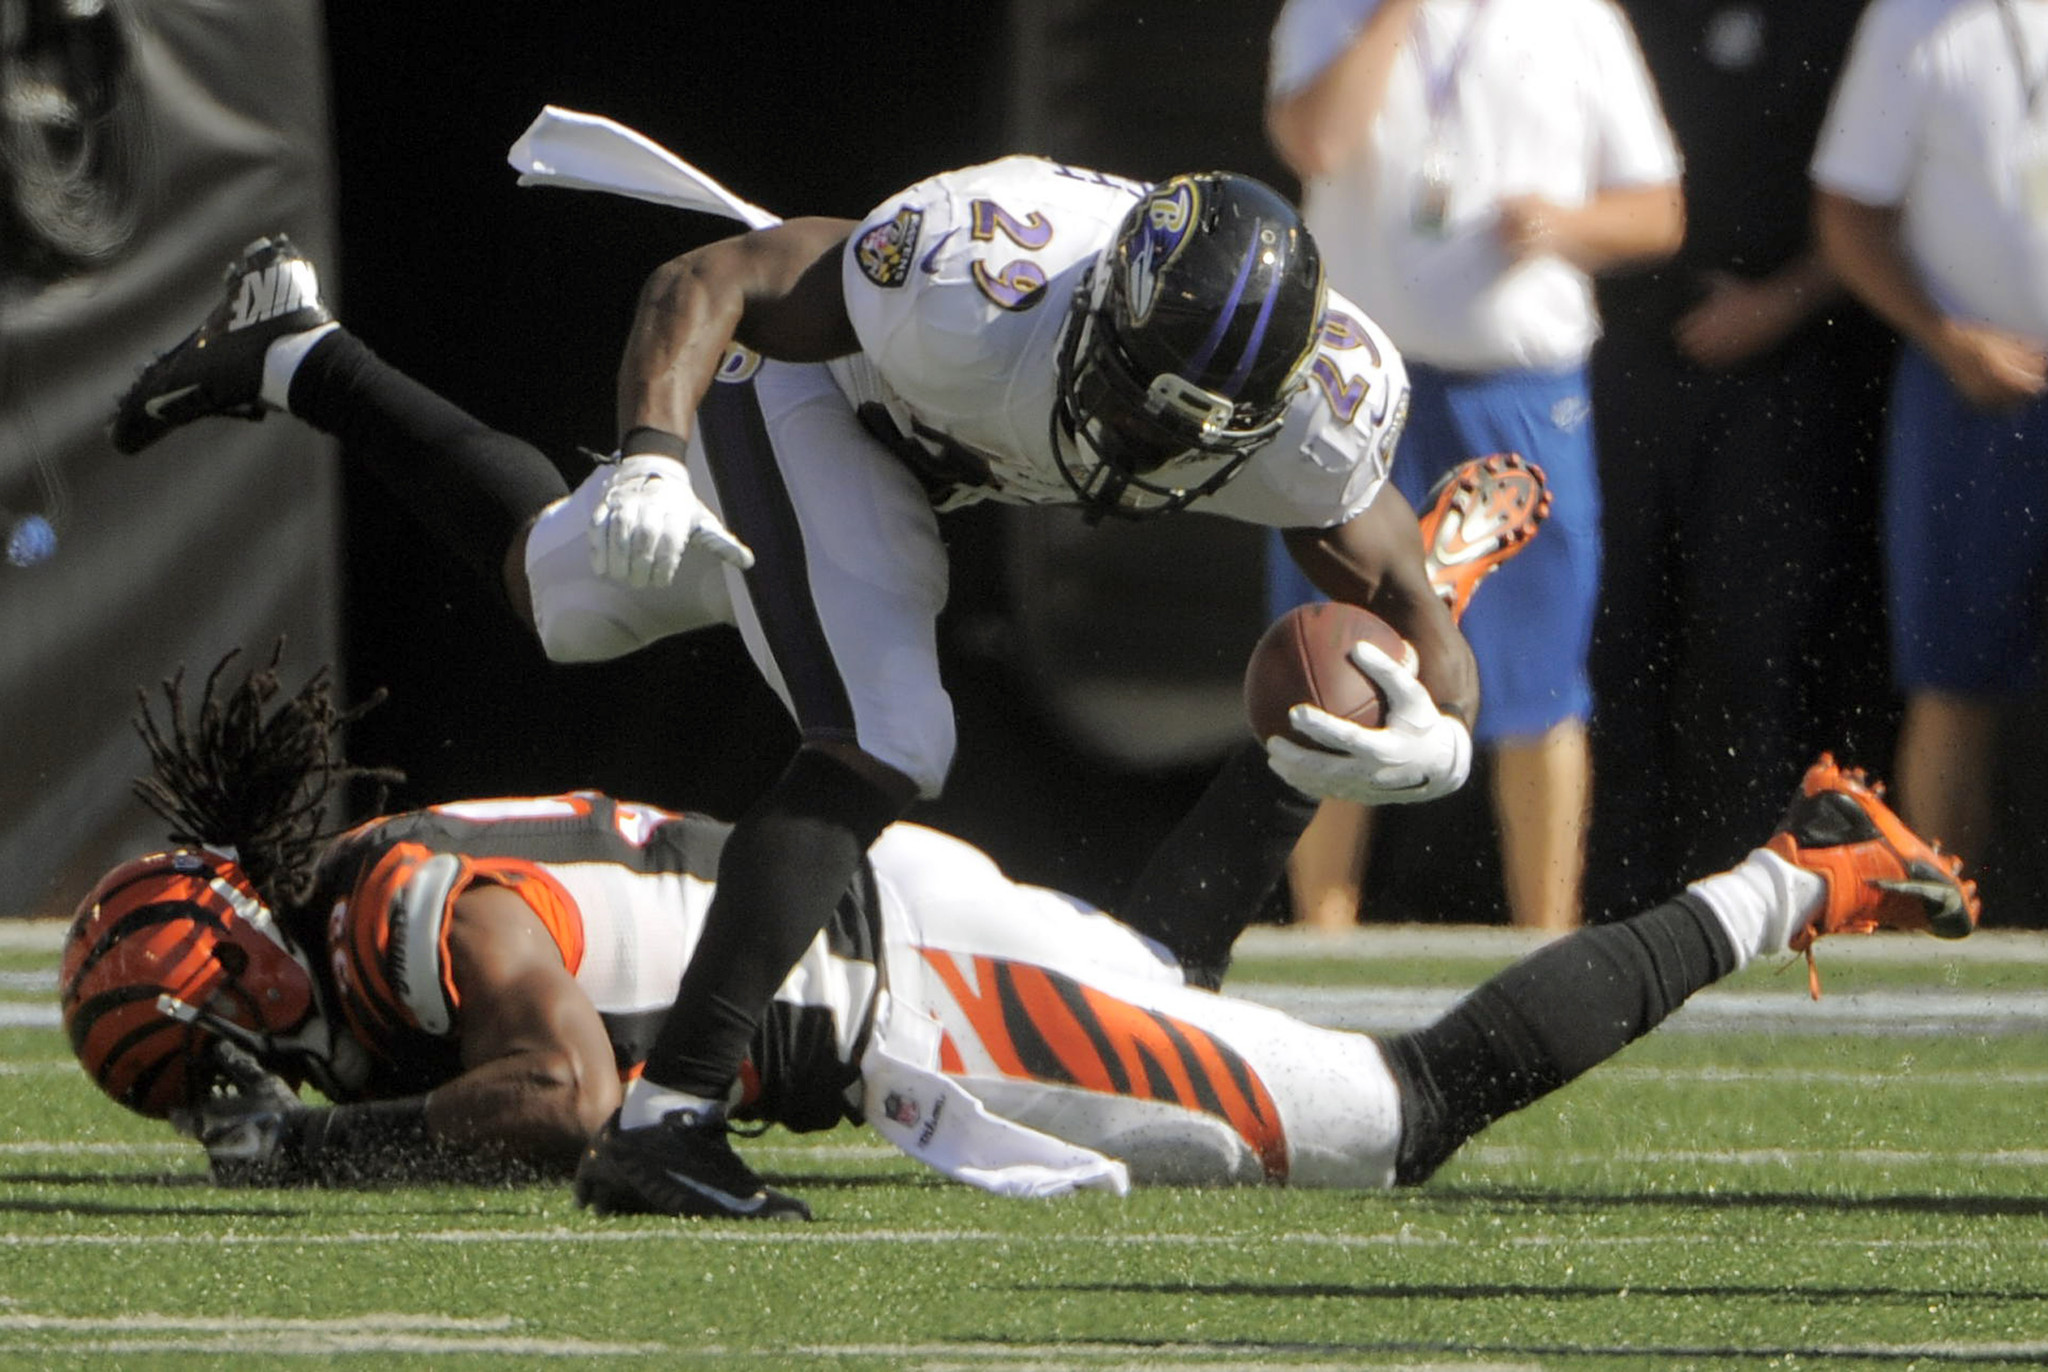 Battling injuries, Bengals look for much-needed win vs. Ravens